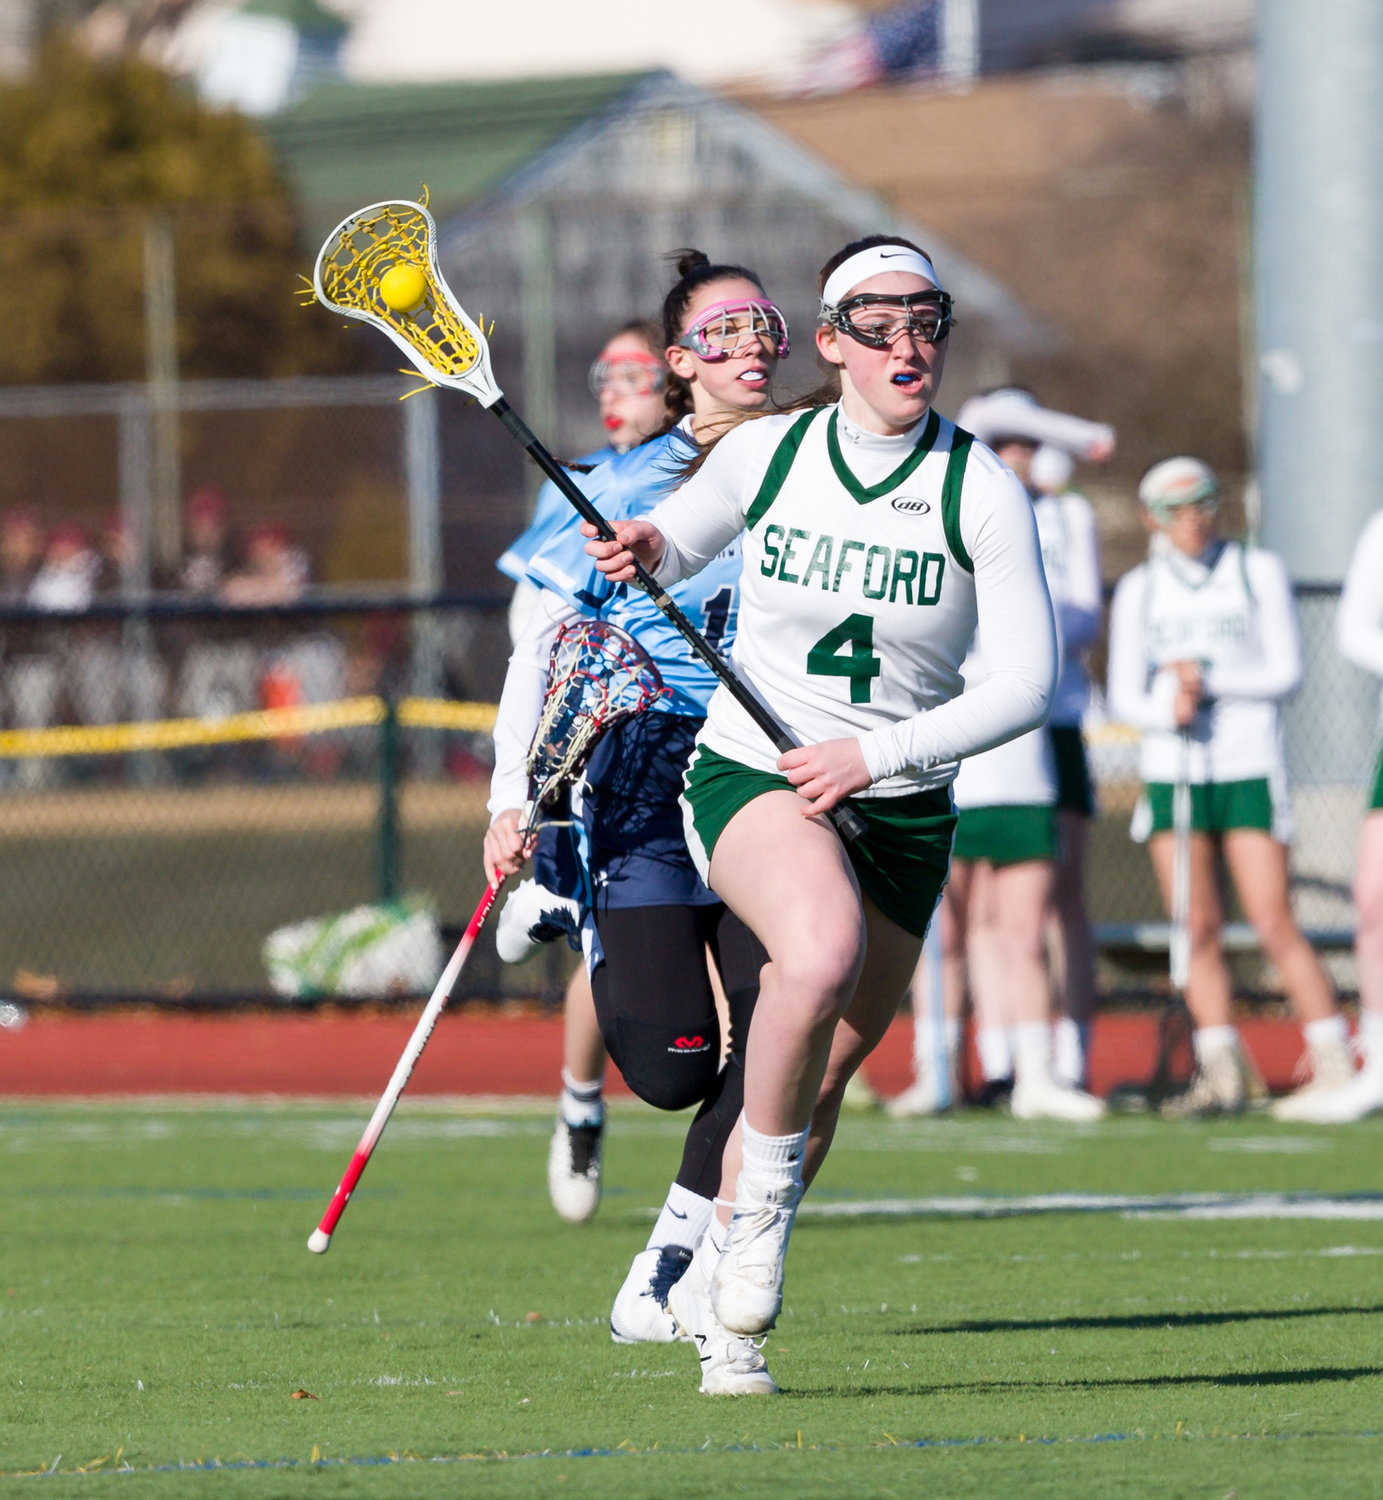 LIU Post-bound Gina Toscano scored three goals in last season's lacrosse opener against Our Lady of Mercy.